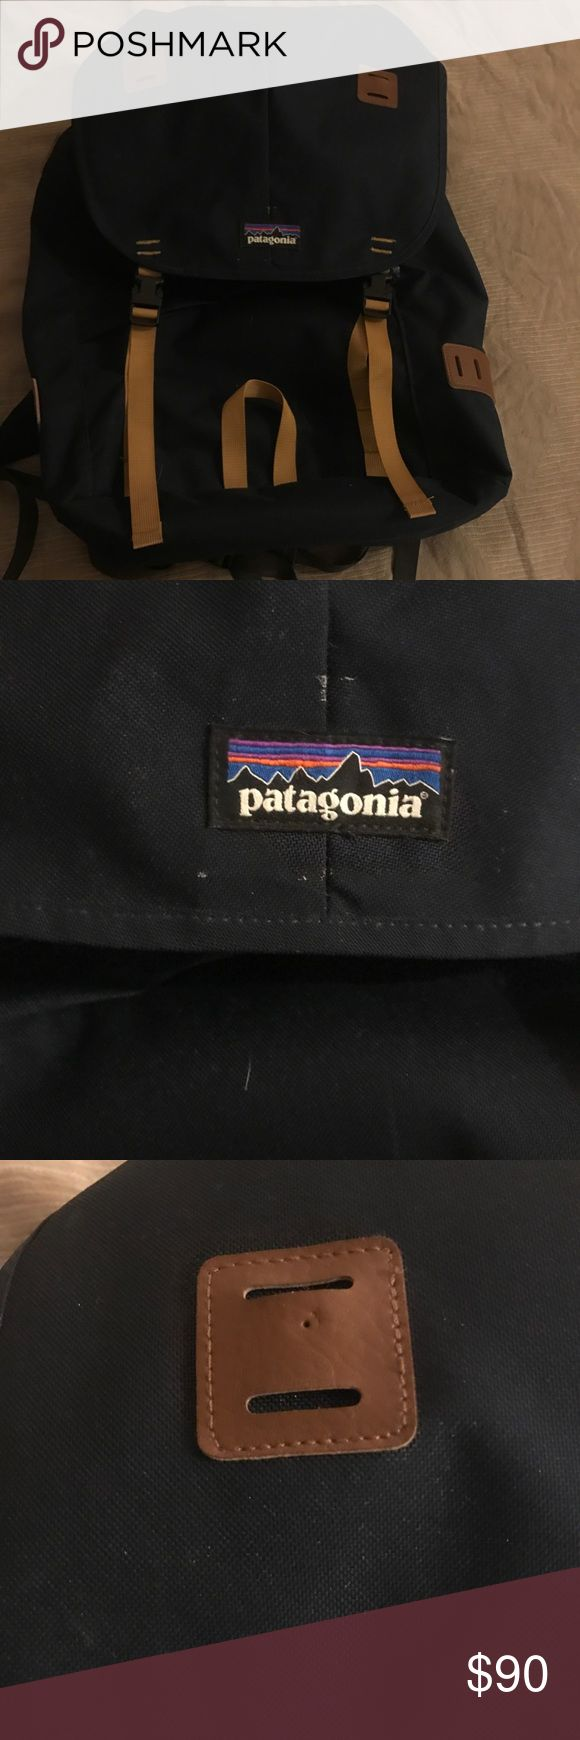 Patagonia Arbor Backpack 26L Patagonia Arbor Pack. Barely used. Two flaws: a tiny hole on the leather piece from a pin. A small amount of glue on the side from a patch. Could be washed out easily, but I have not washed it yet. Patagonia Bags Backpacks